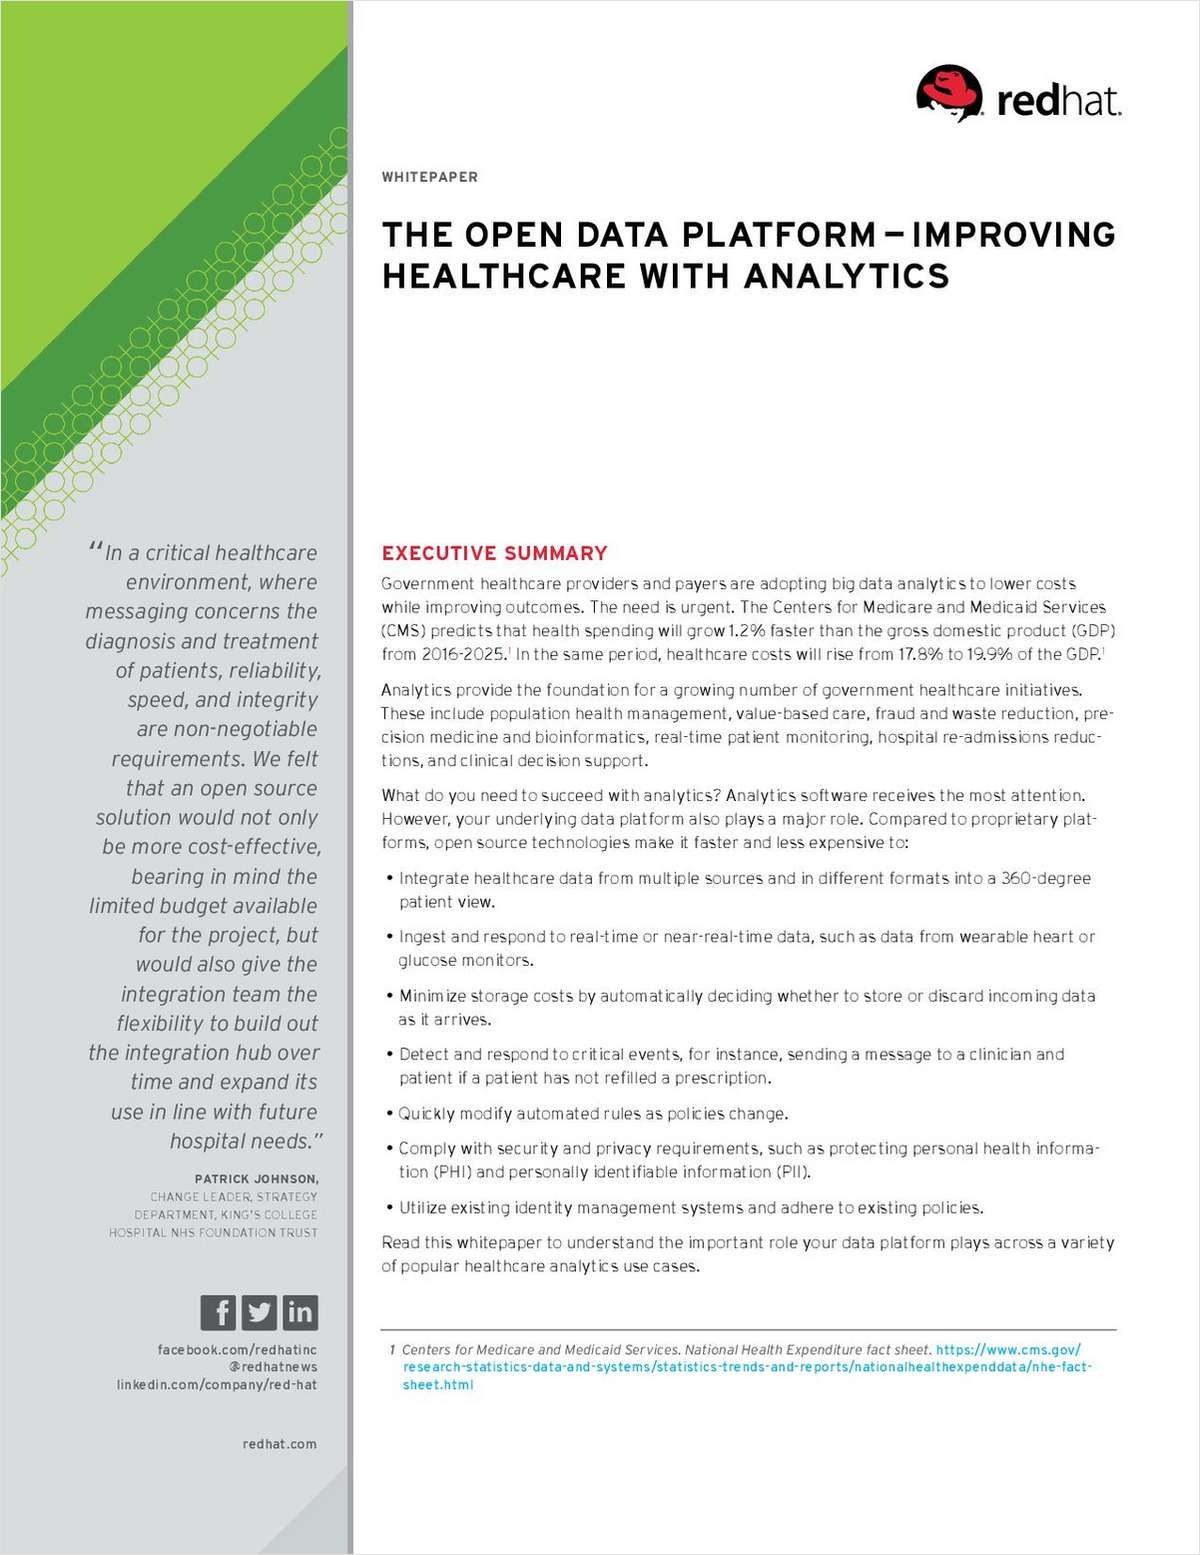 The Open Data Platform--Improving Healthcare with Analytics